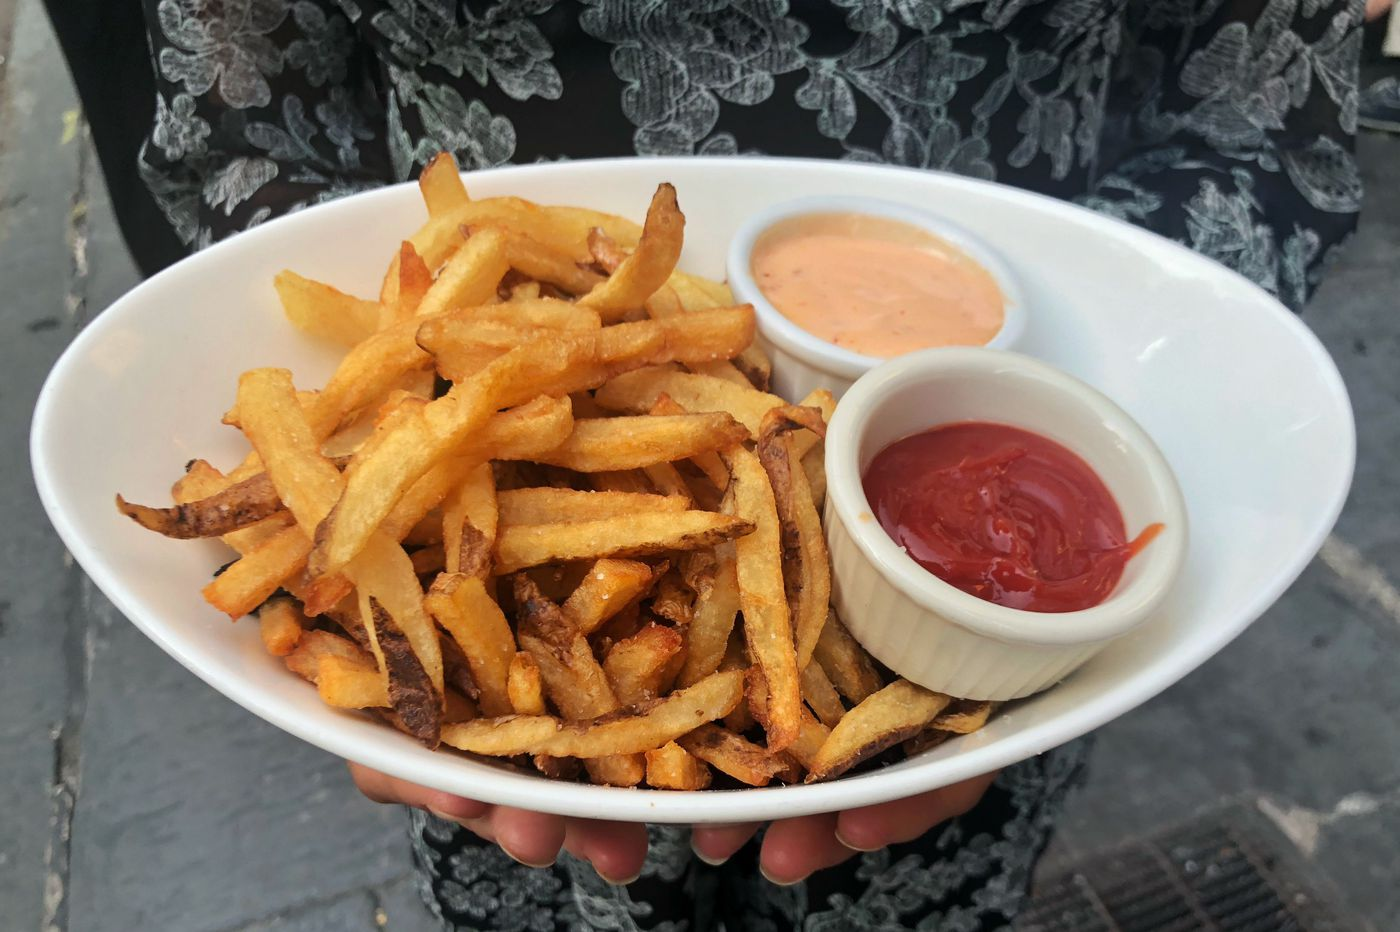 On National French Fry Day, some of your favorite fries in Philadelphia